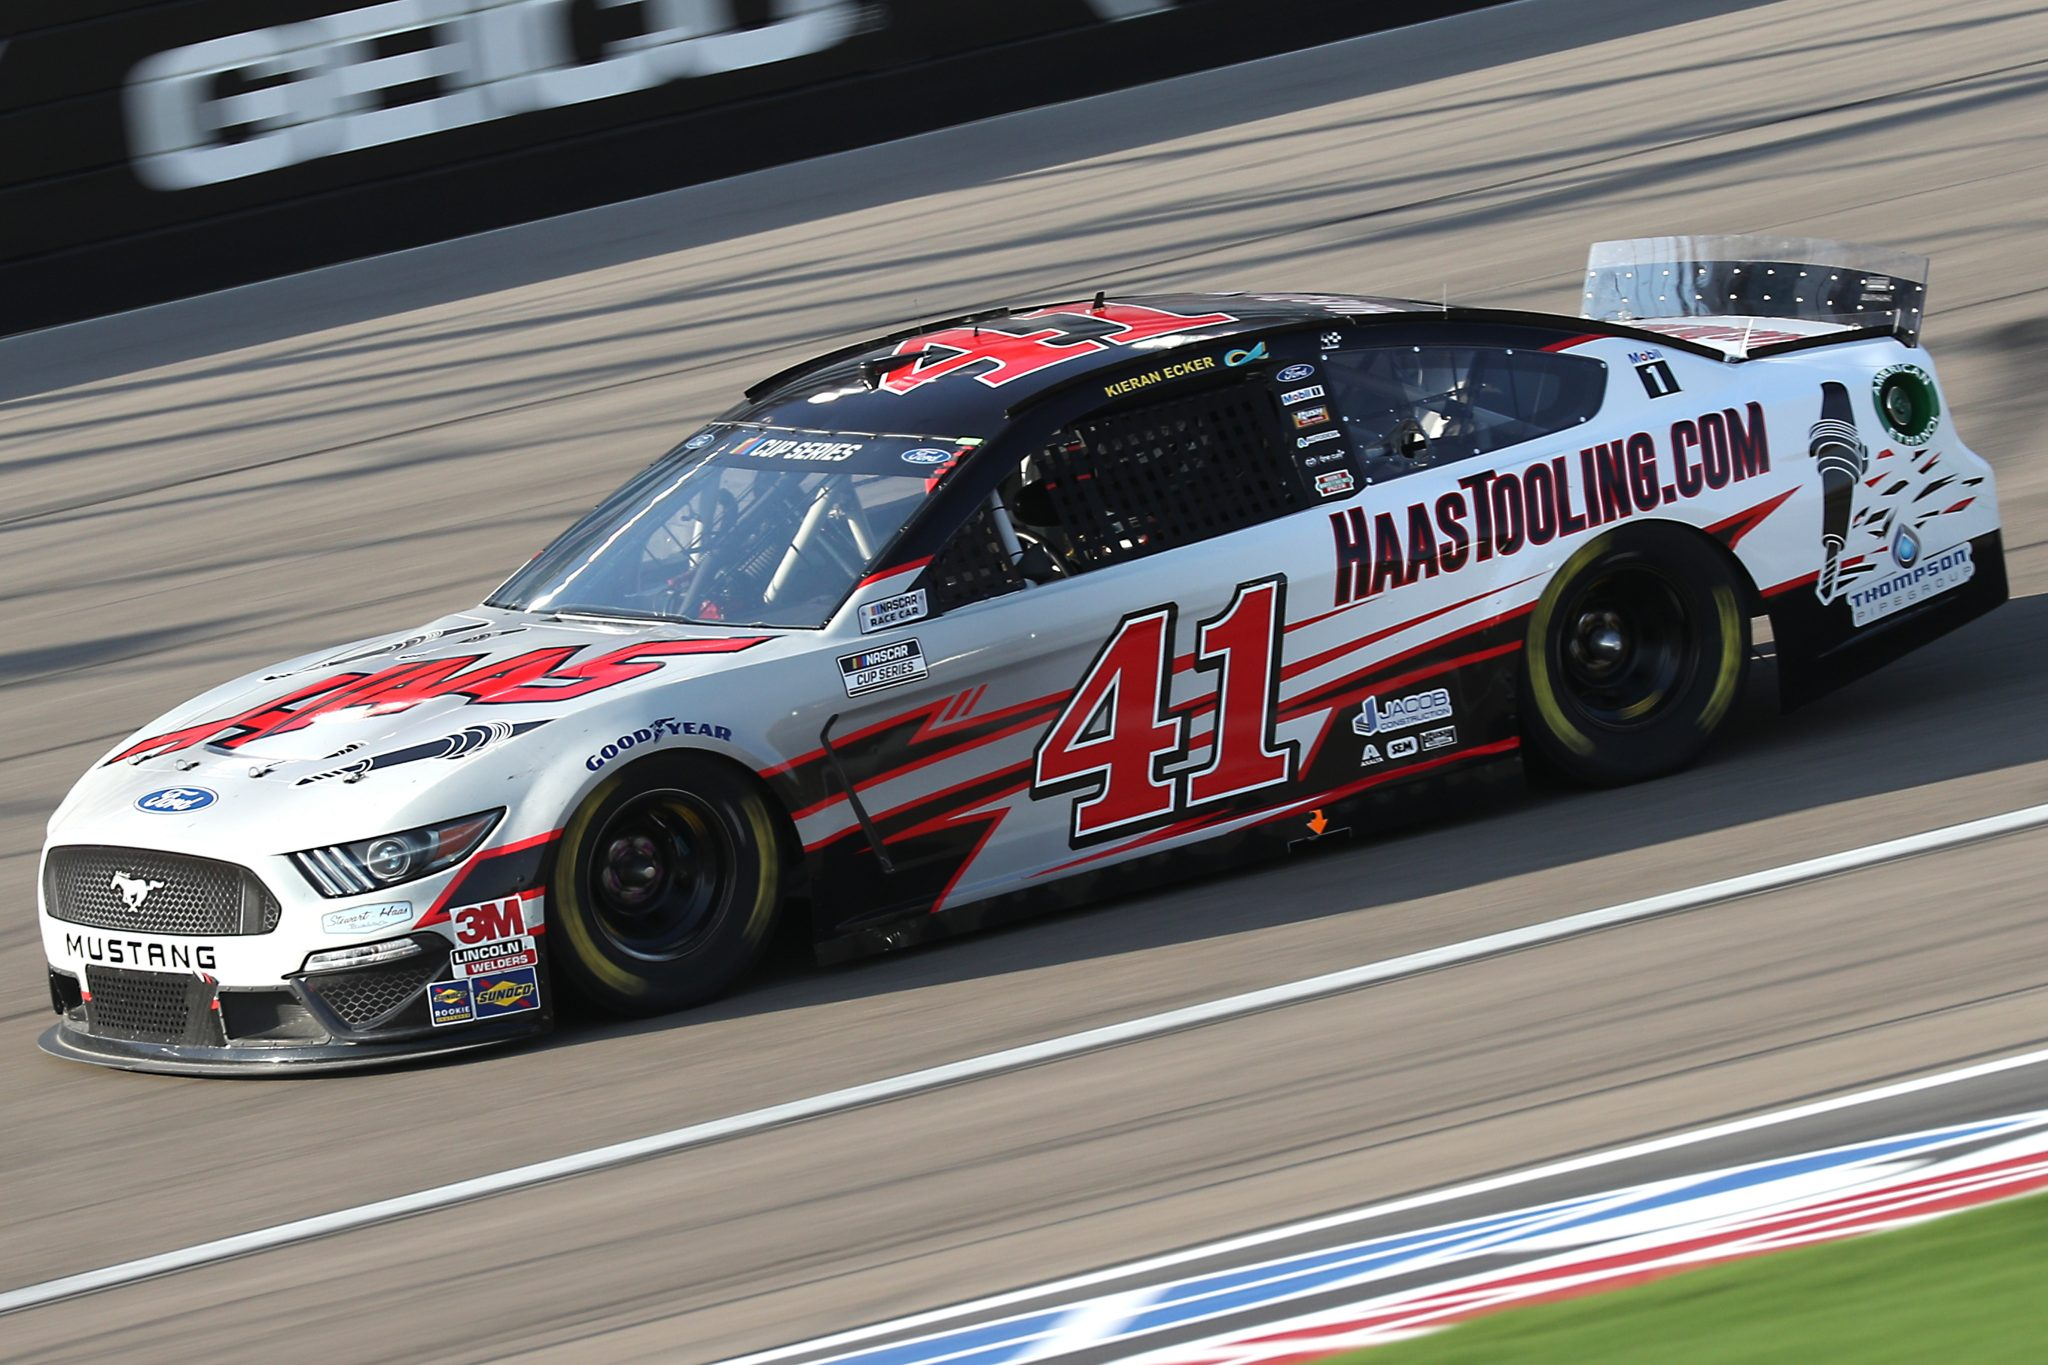 LAS VEGAS, NEVADA - SEPTEMBER 27: Cole Custer, driver of the #41 HaasTooling.com Ford, drives during the NASCAR Cup Series South Point 400 at Las Vegas Motor Speedway on September 27, 2020 in Las Vegas, Nevada. (Photo by Chris Graythen/Getty Images) | Getty Images